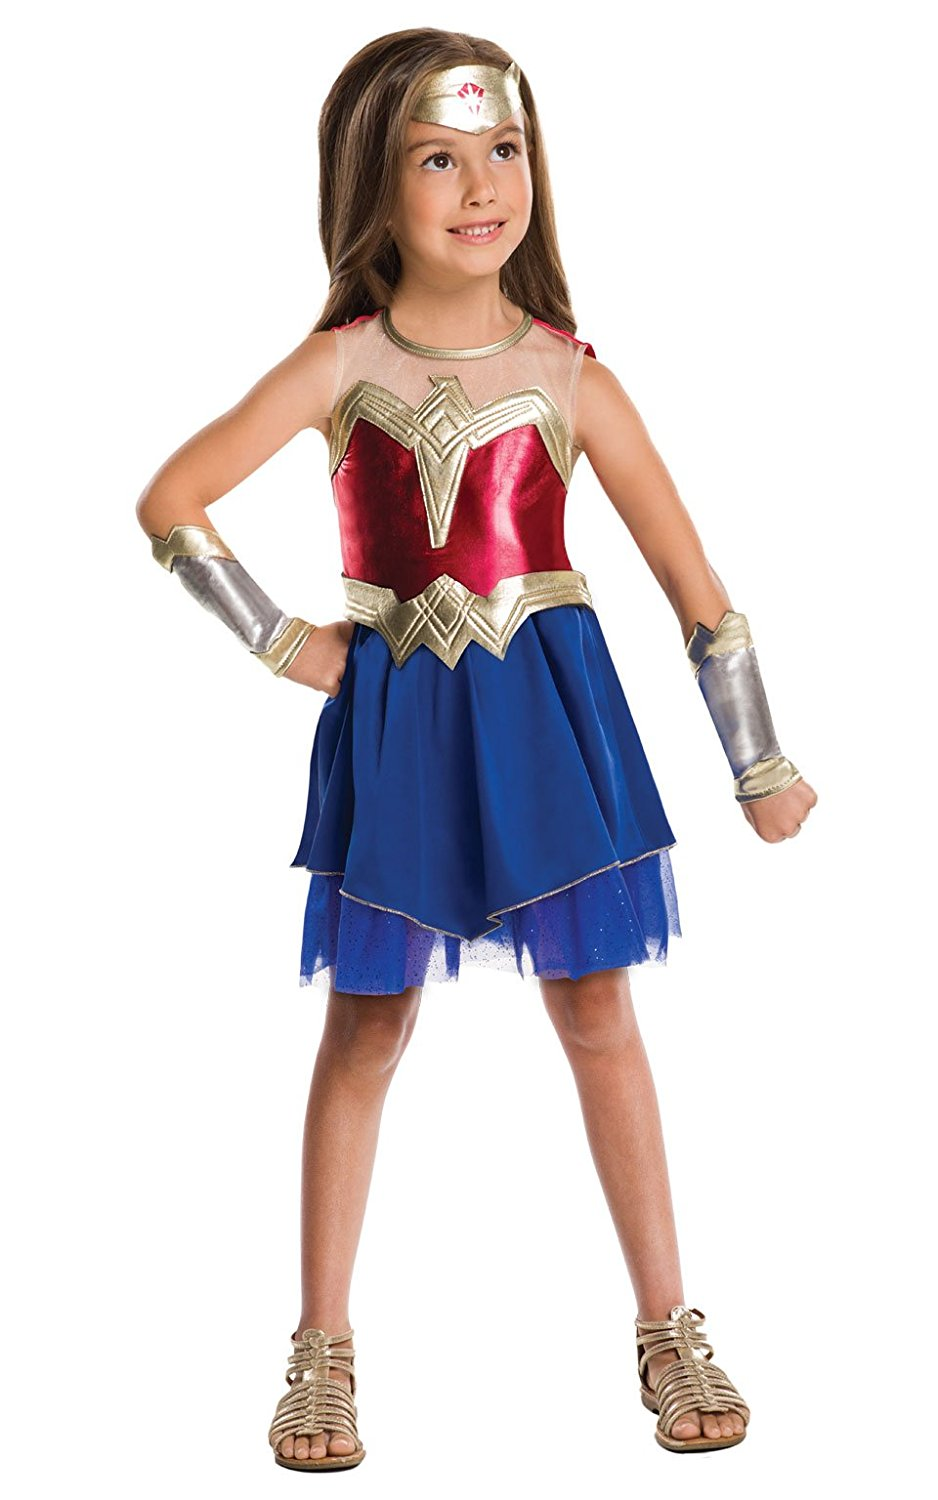 Wonder Woman Costume 640816. 9-10 Years